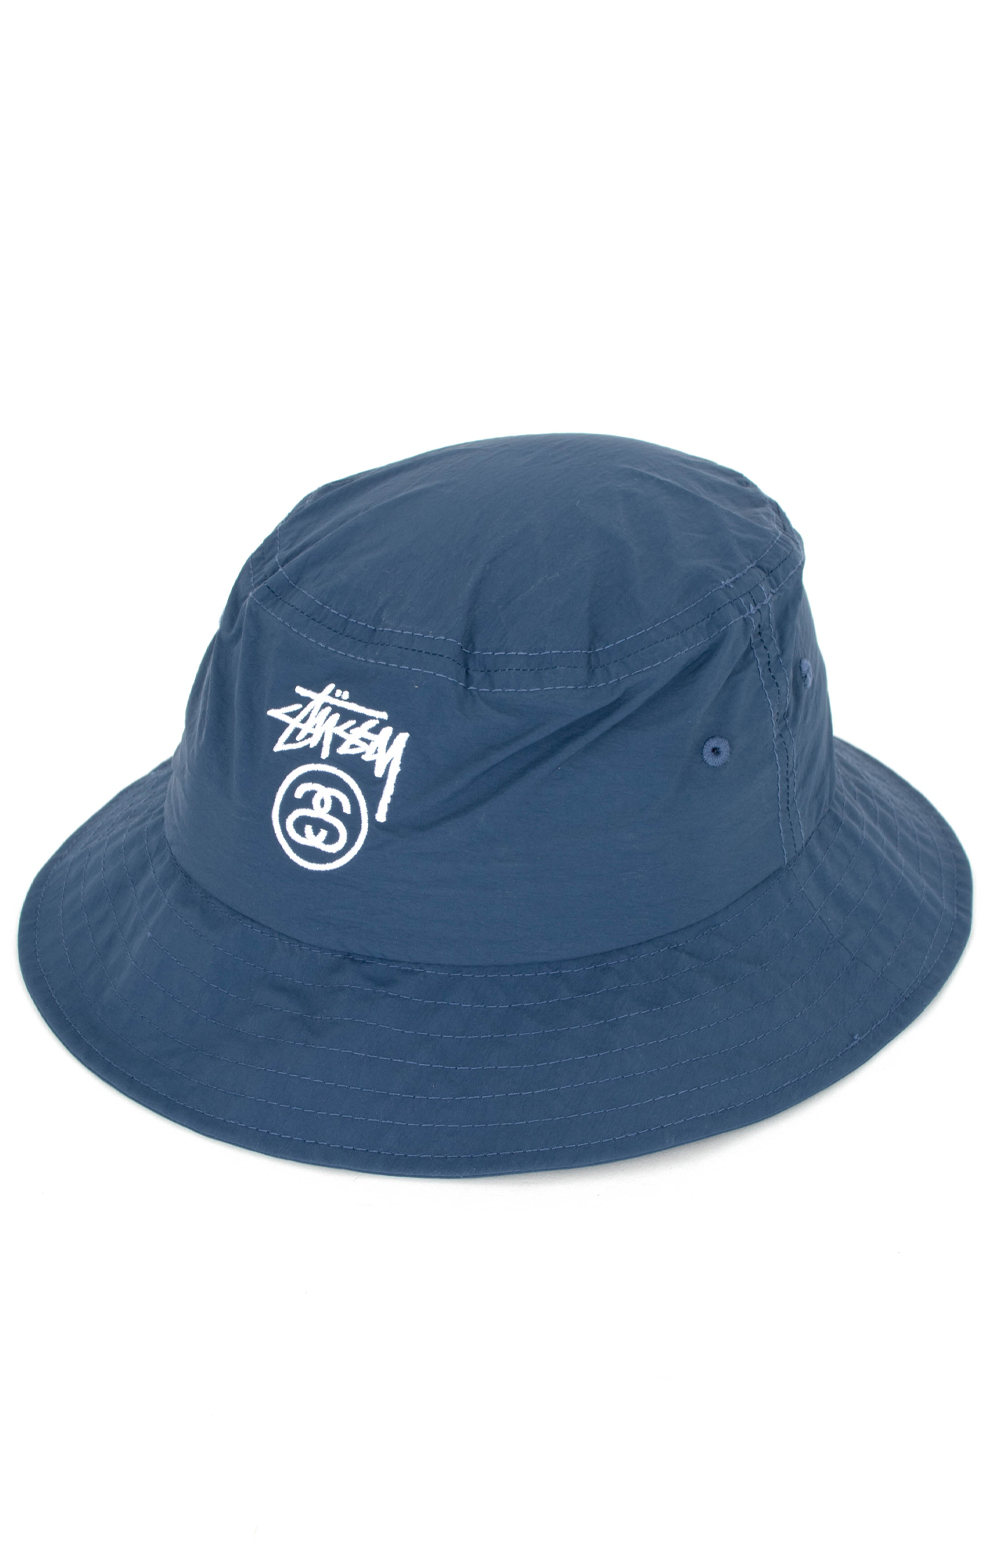 Crushable Stock Lock Bucket Hat - Navy